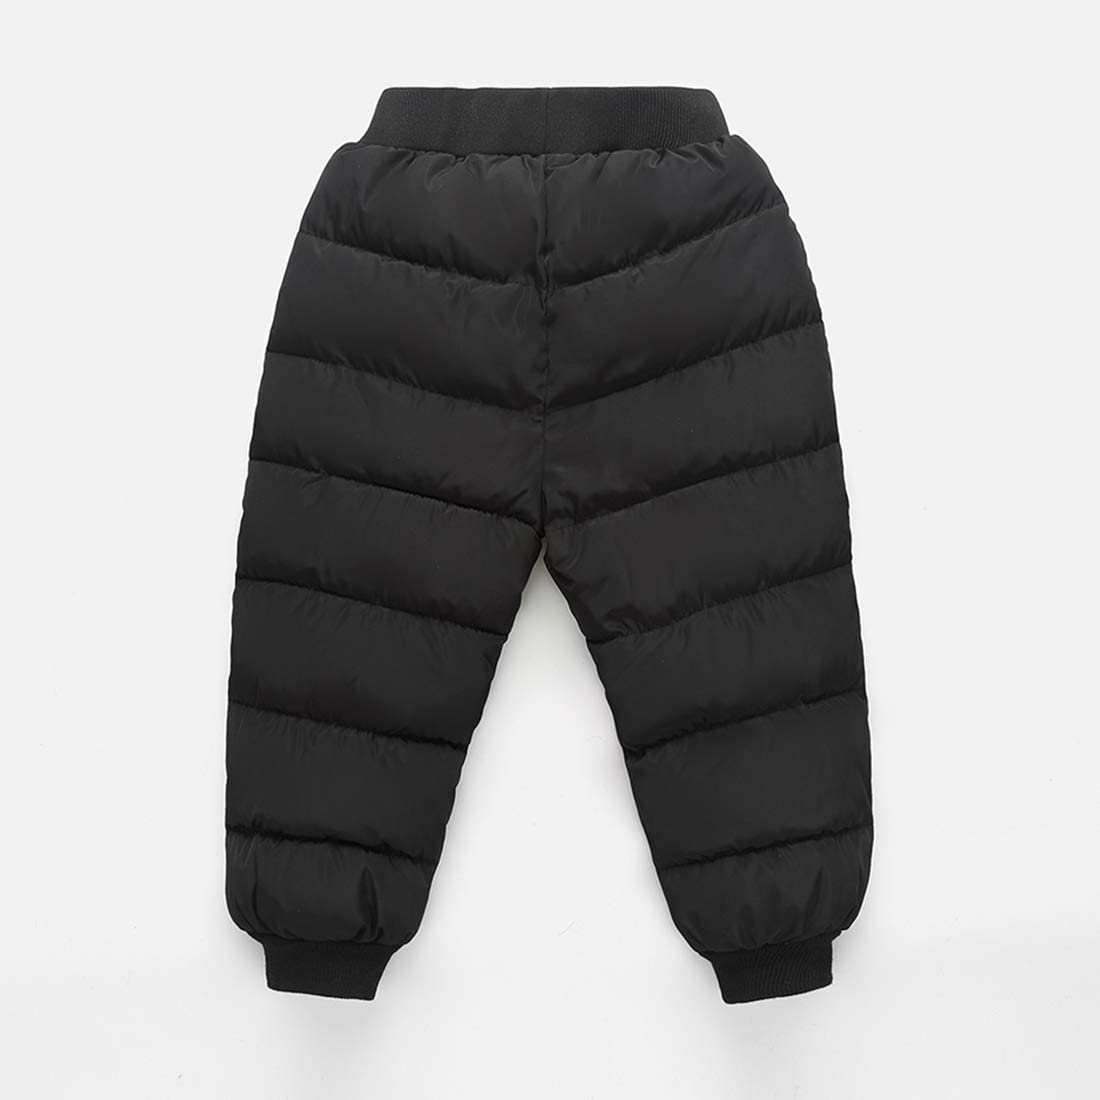 CECORC Puffer Winter Pants for Boys and Girls Warm and Windproof Trousers,Snow Play